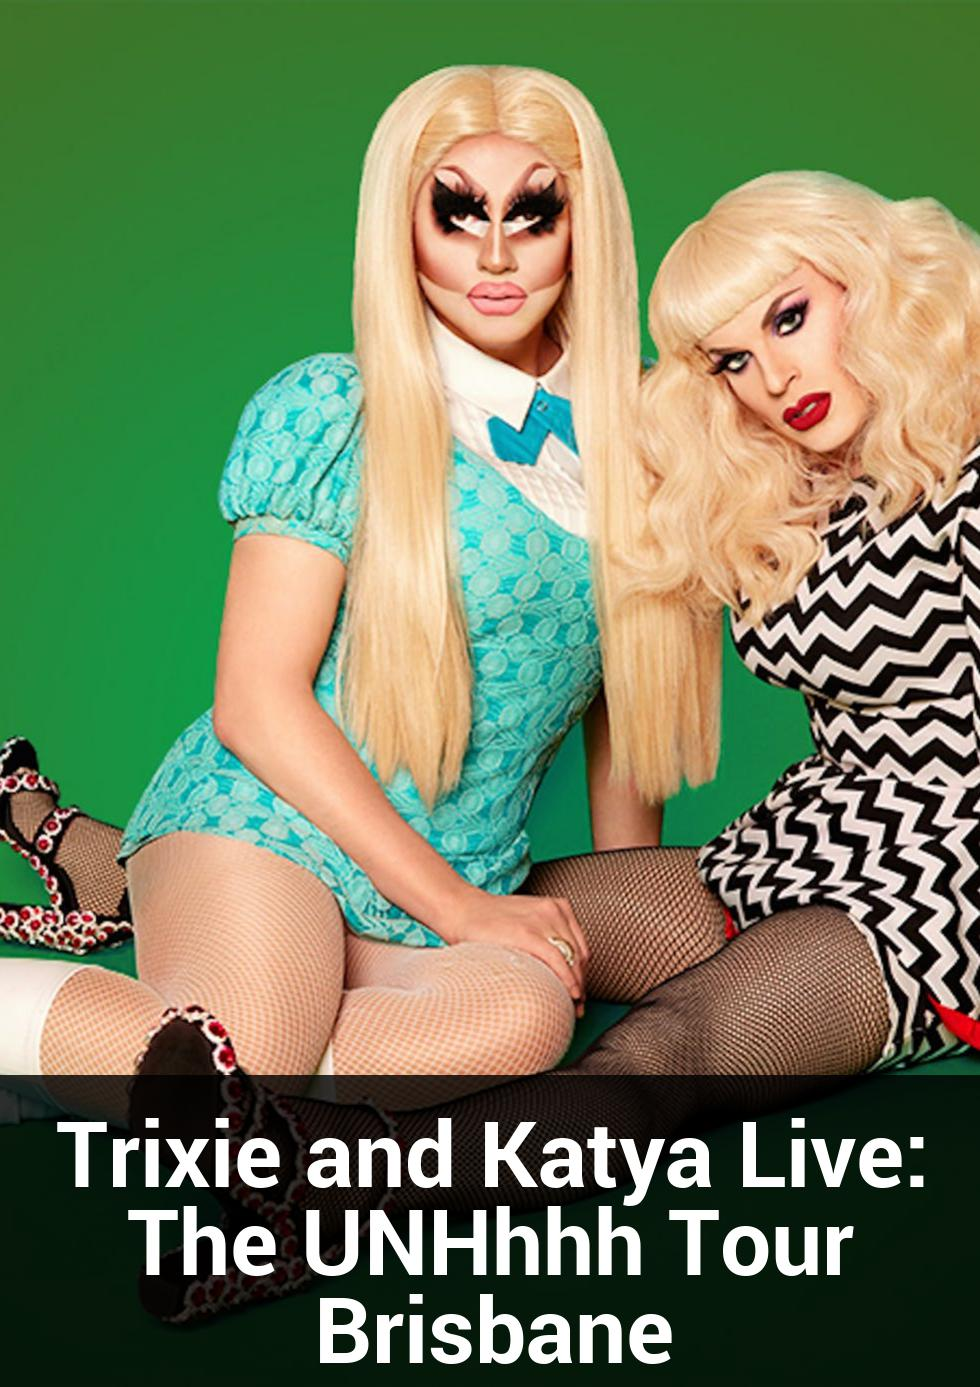 Trixie and Katya Live: The UNHhhh Tour Brisbane at Concert Hall, QPAC